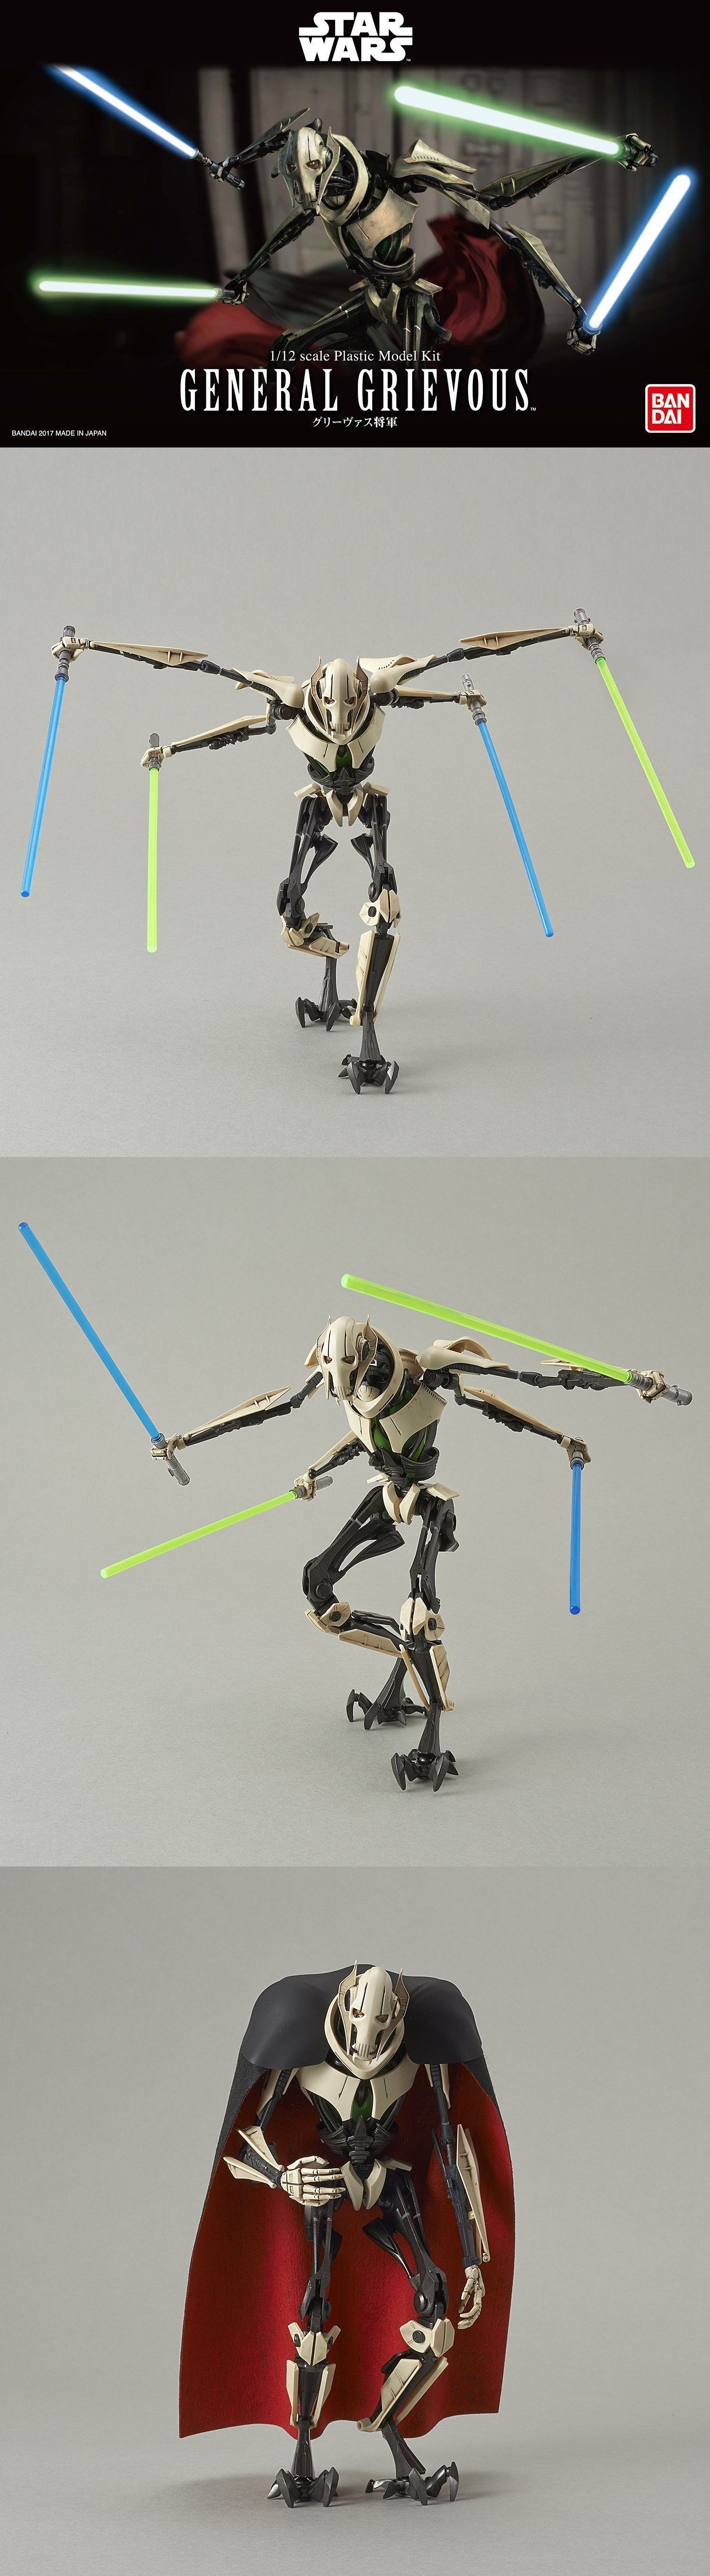 Bandai Hobby Star Wars General Grievous 1//12 Scale Model Kit Action Figure